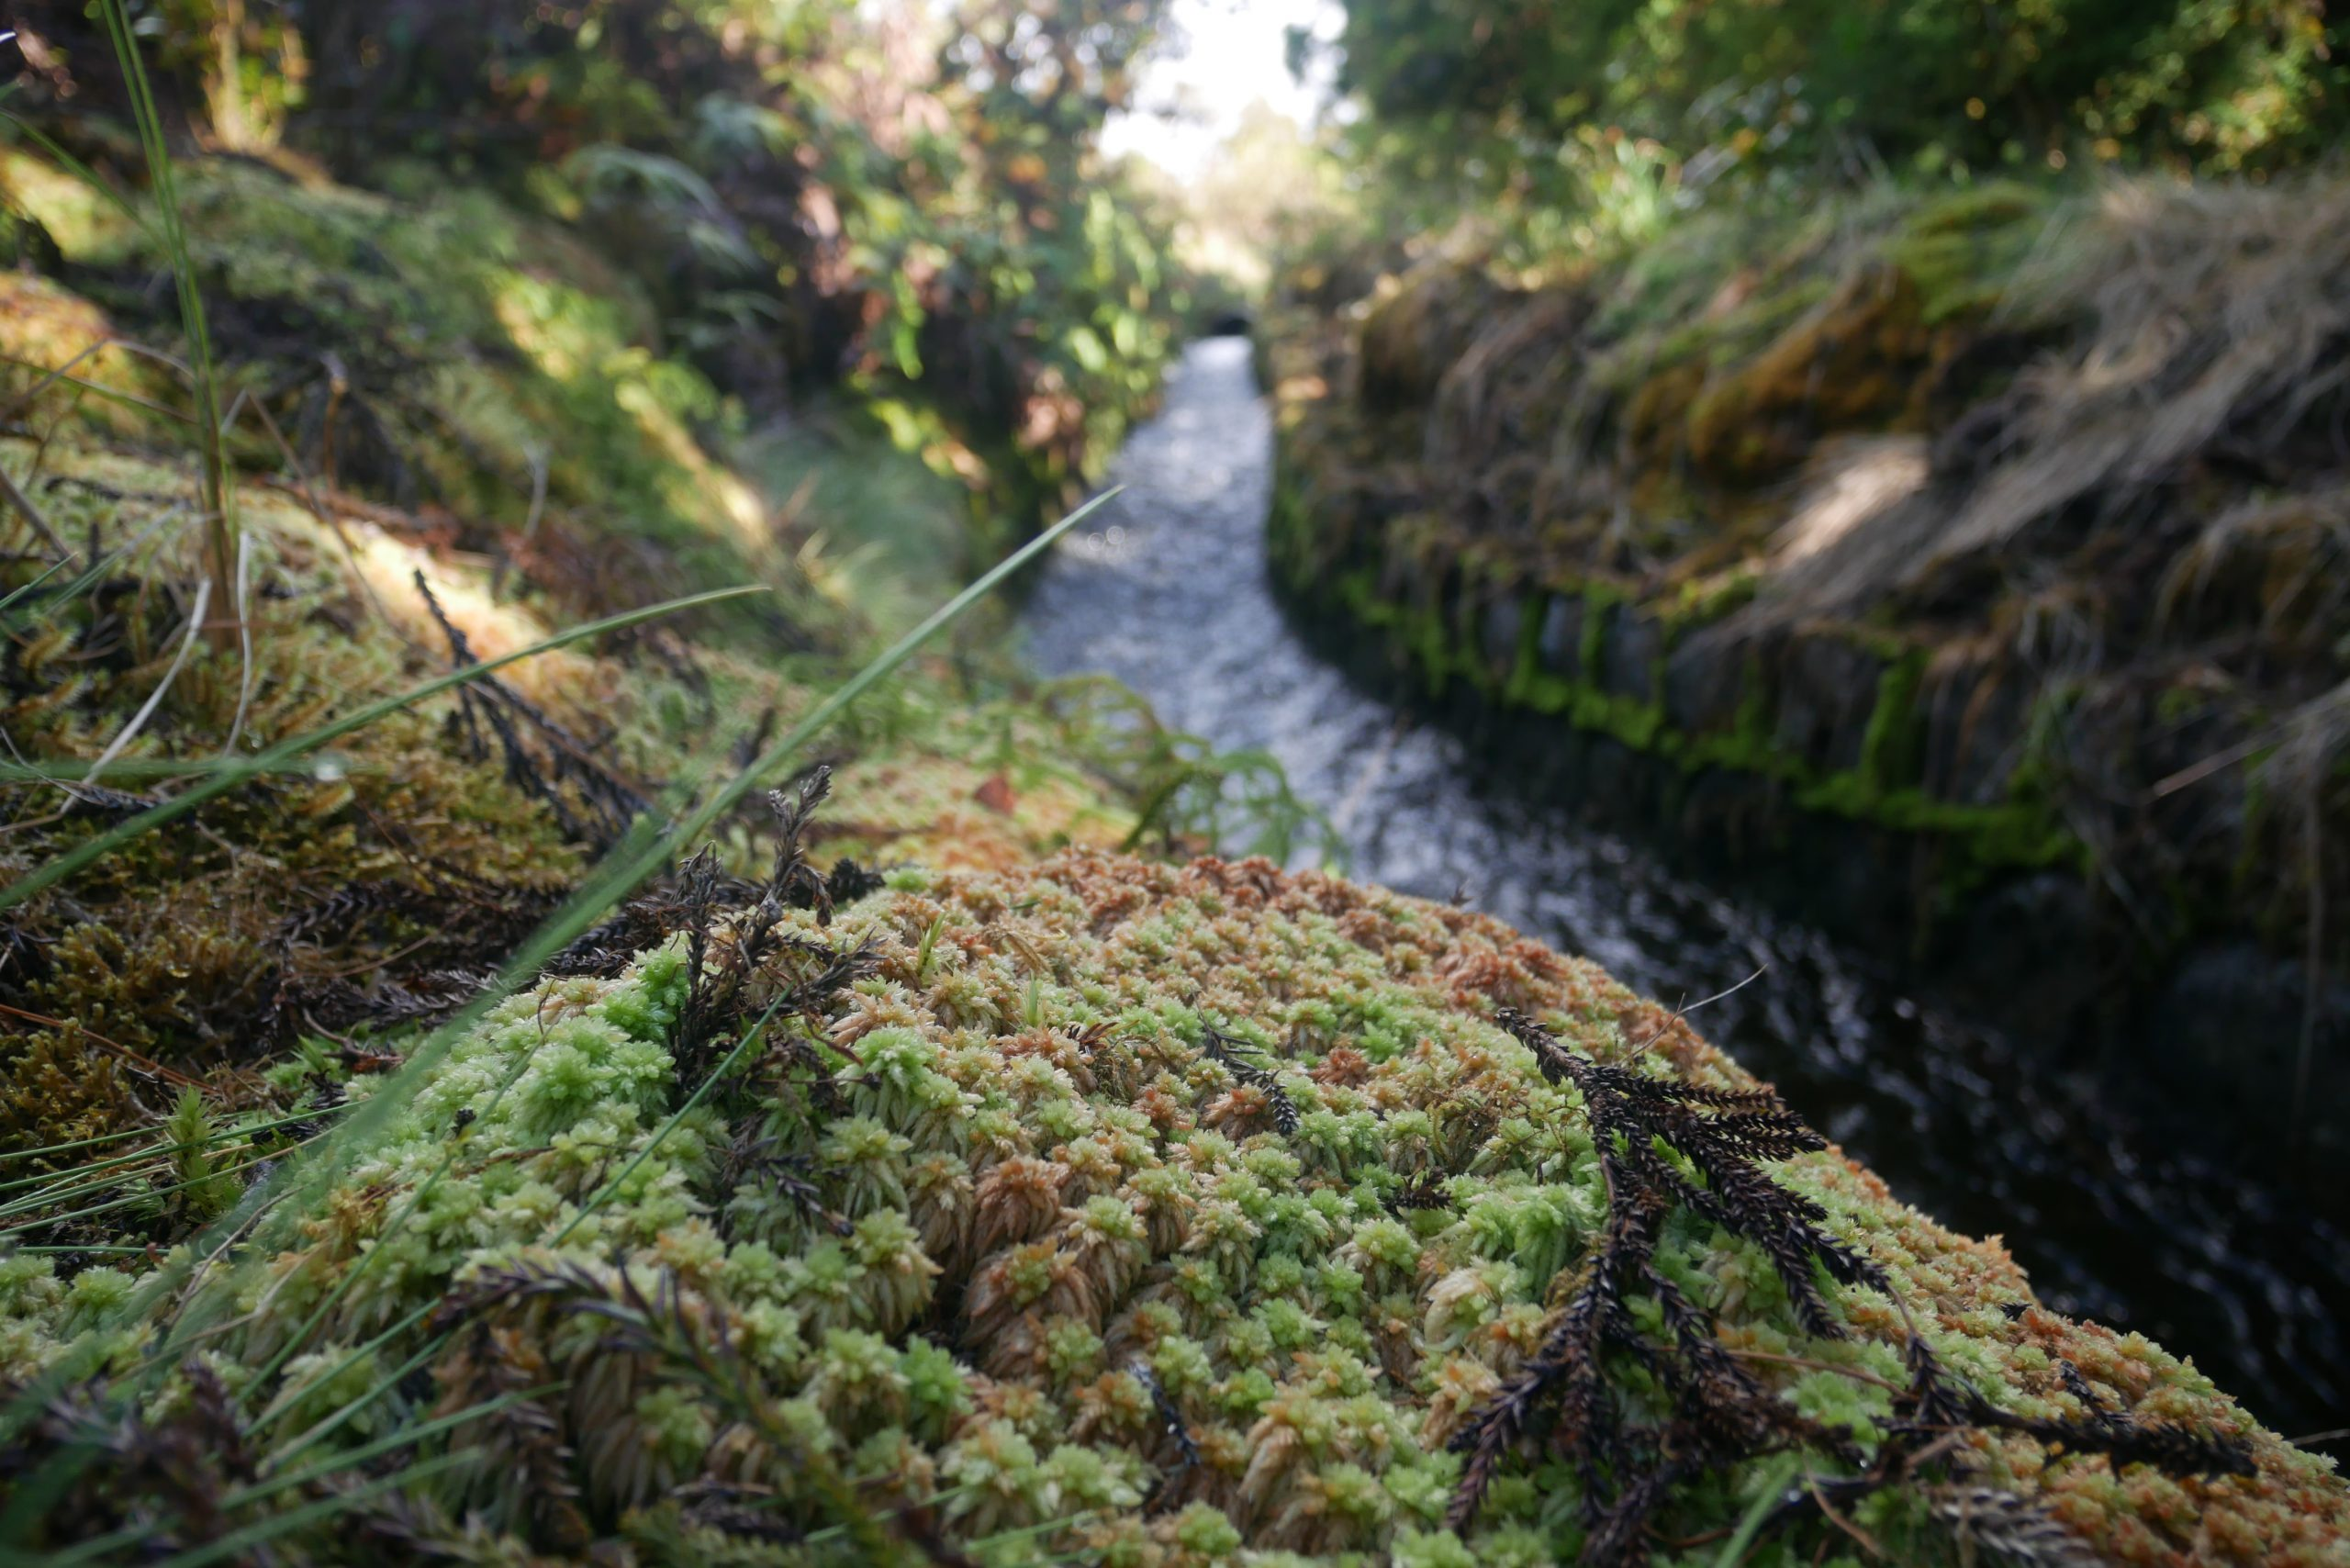 Picture of Water canal in Kohala forest overgrown with the carpet moss Sphagnum palustre